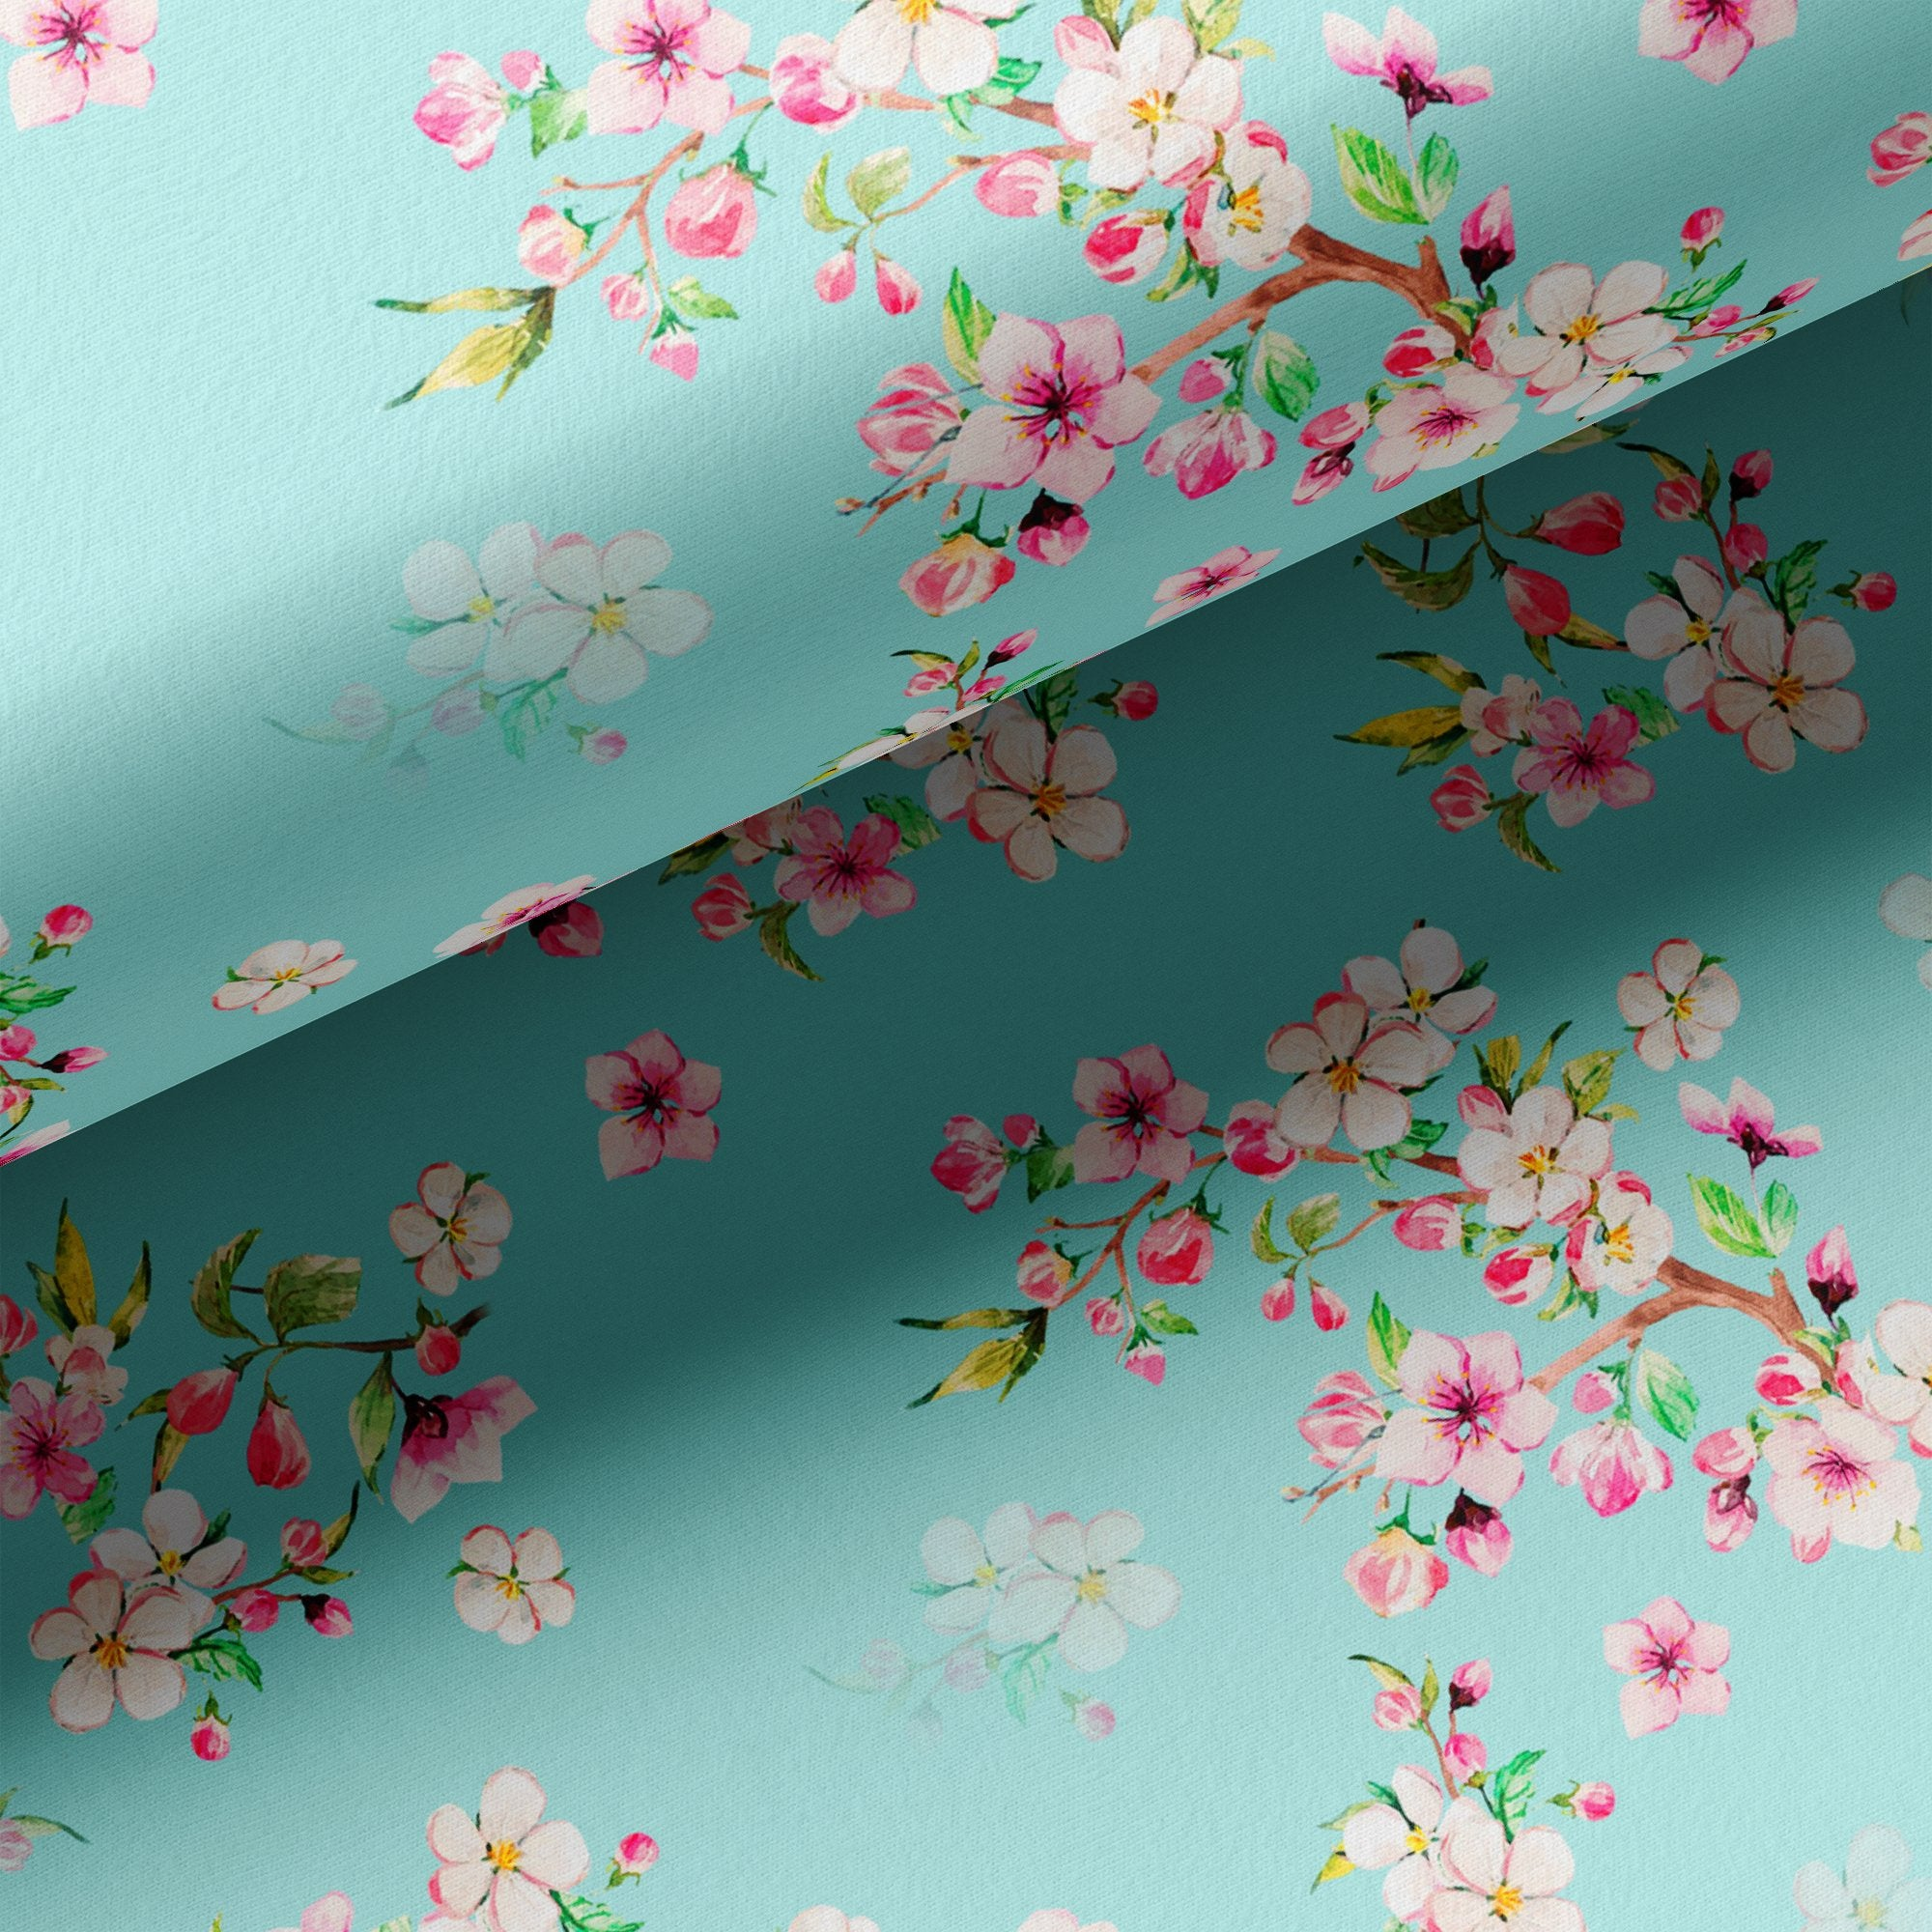 Beautiful Rama Floral Vine Digital Printed Fabric - FAB VOGUE Studio. Shop Fabric @ www.fabvoguestudio.com